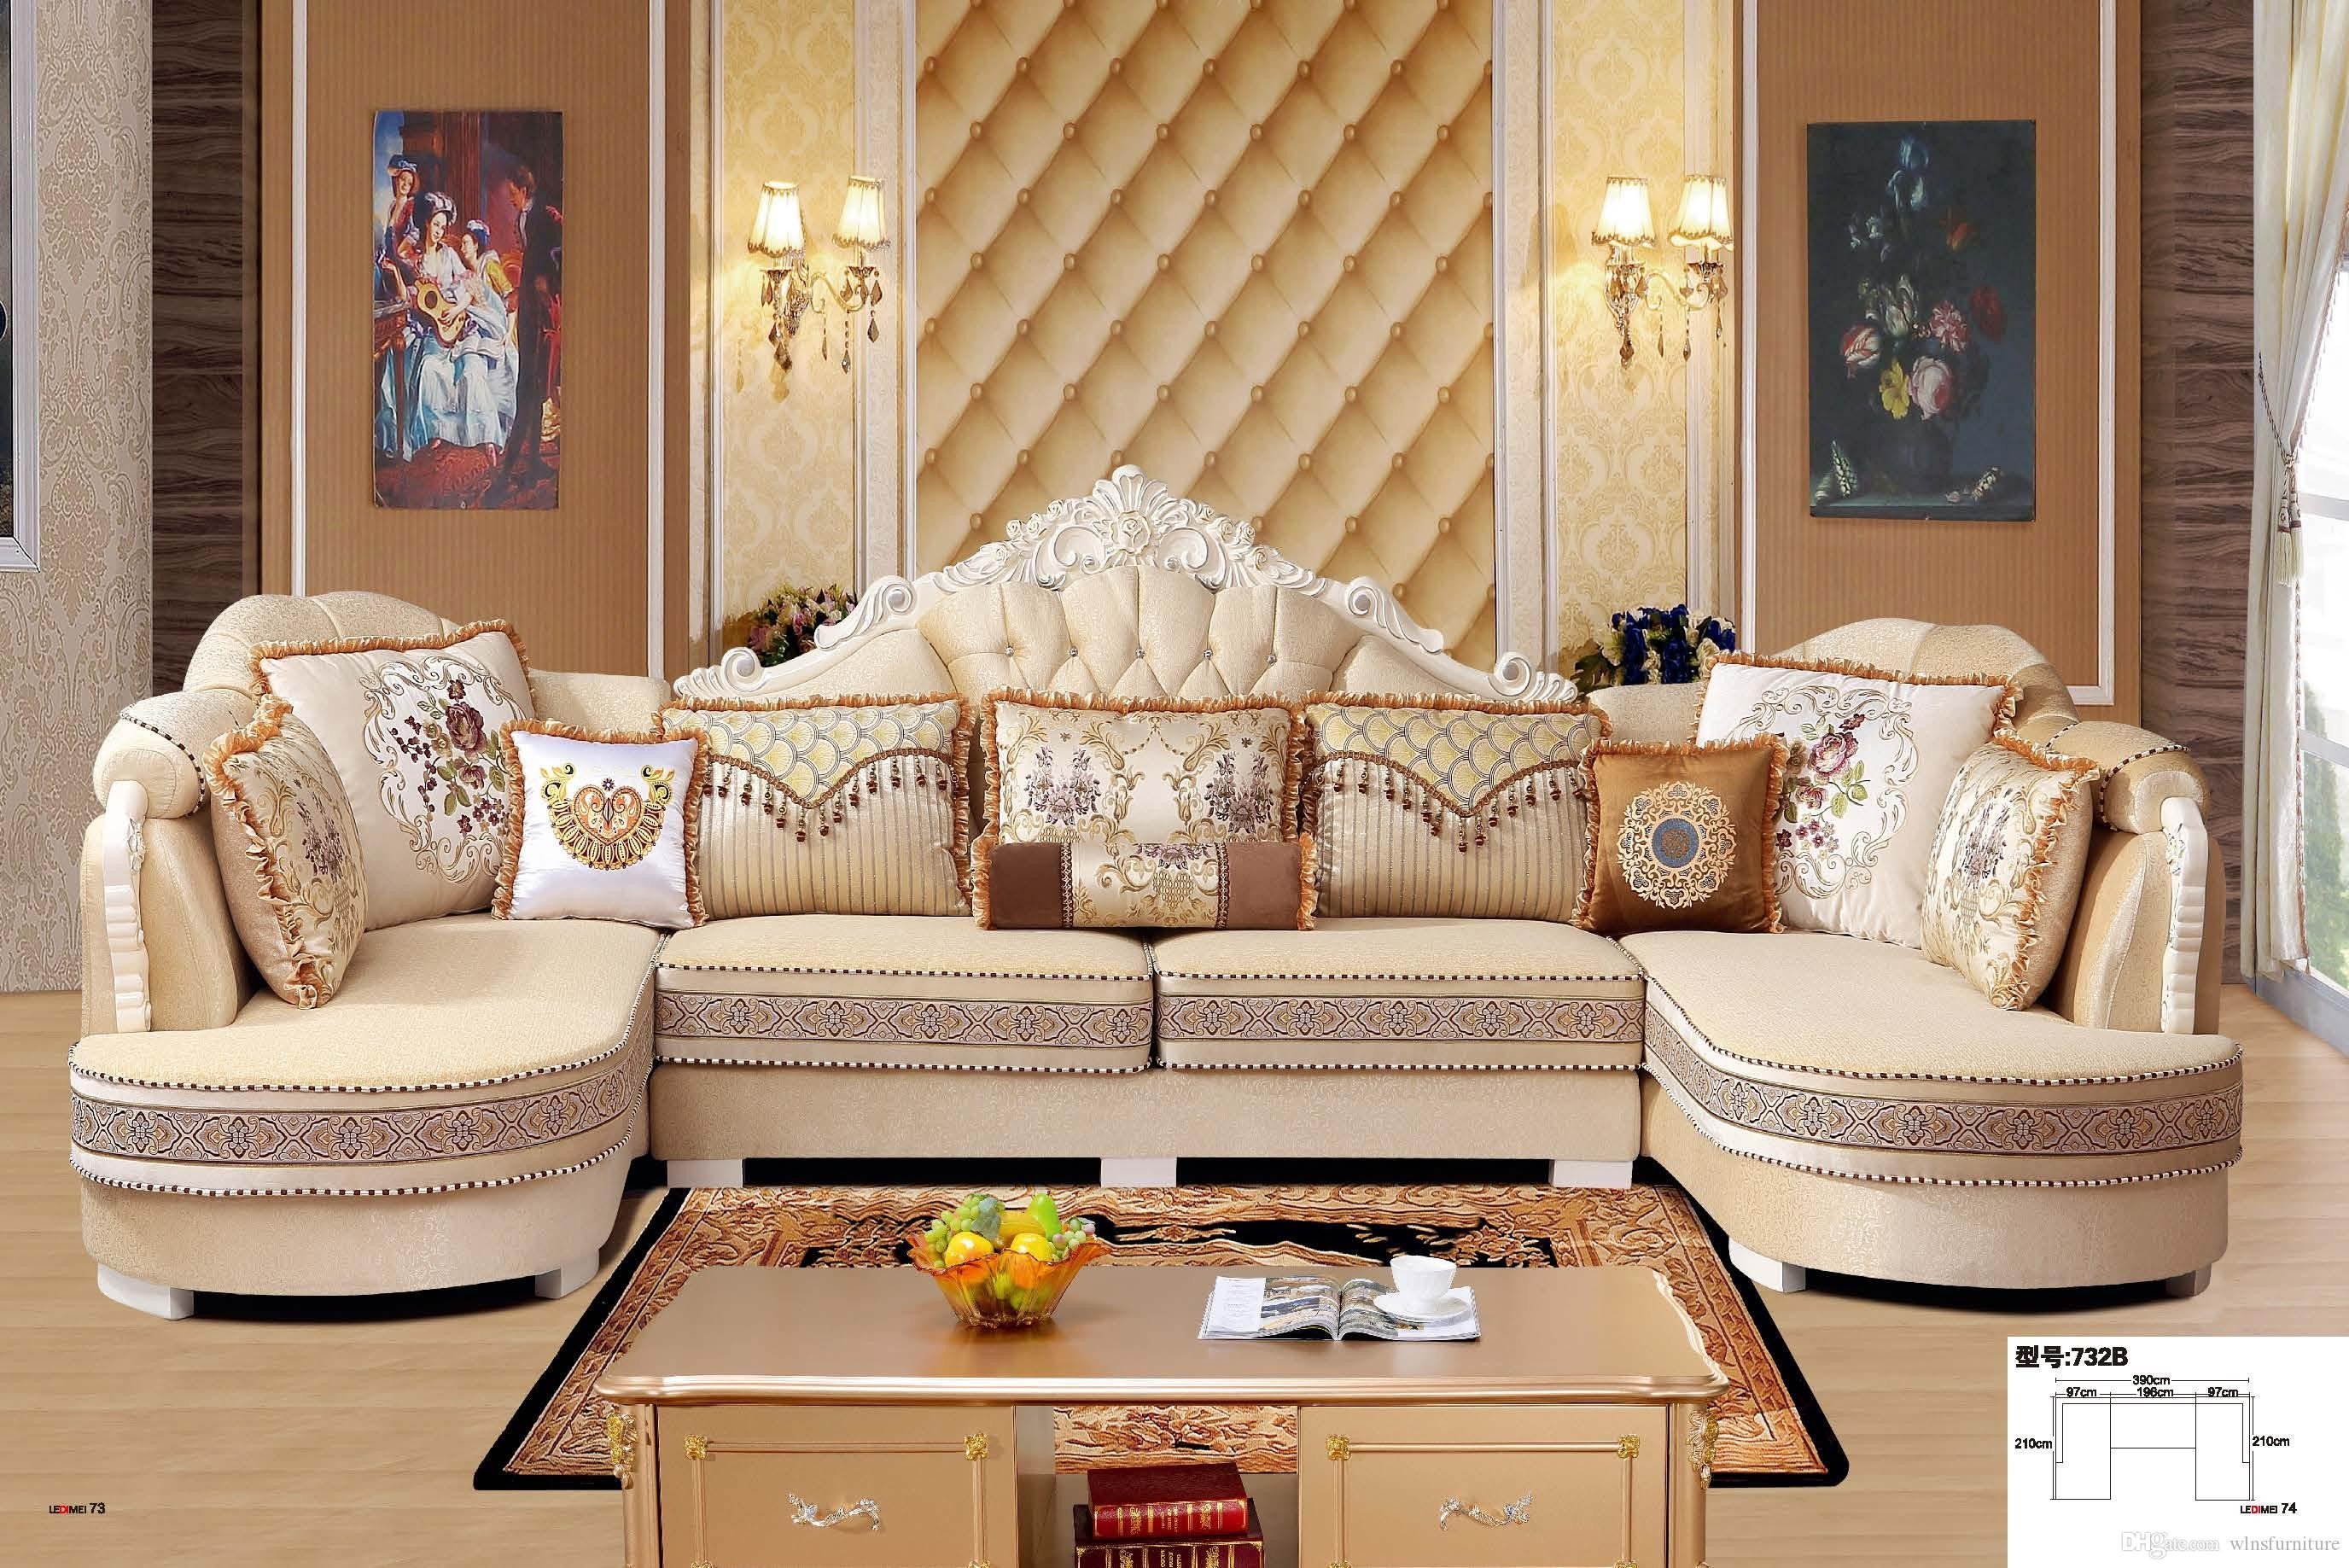 Comfortable Living Roomfurniture Elegant 2019 Modern Living Room Fabric sofa L Shape Sectional soft fortable sofa Set Living Room